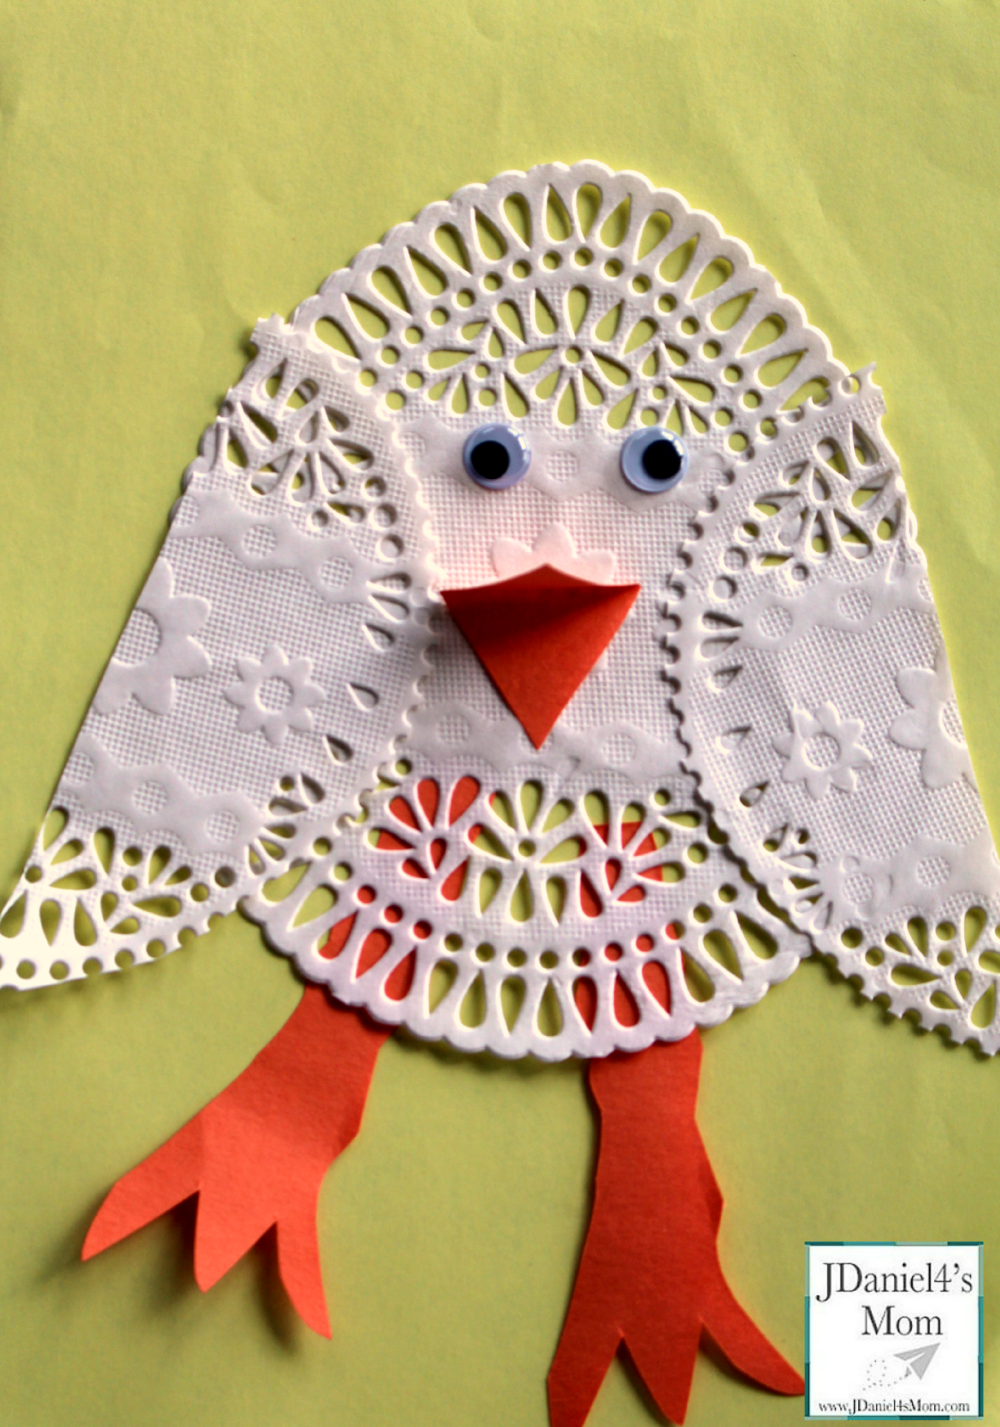 Easter arts and crafts ideas for children - Easter Arts And Crafts Doily Chick